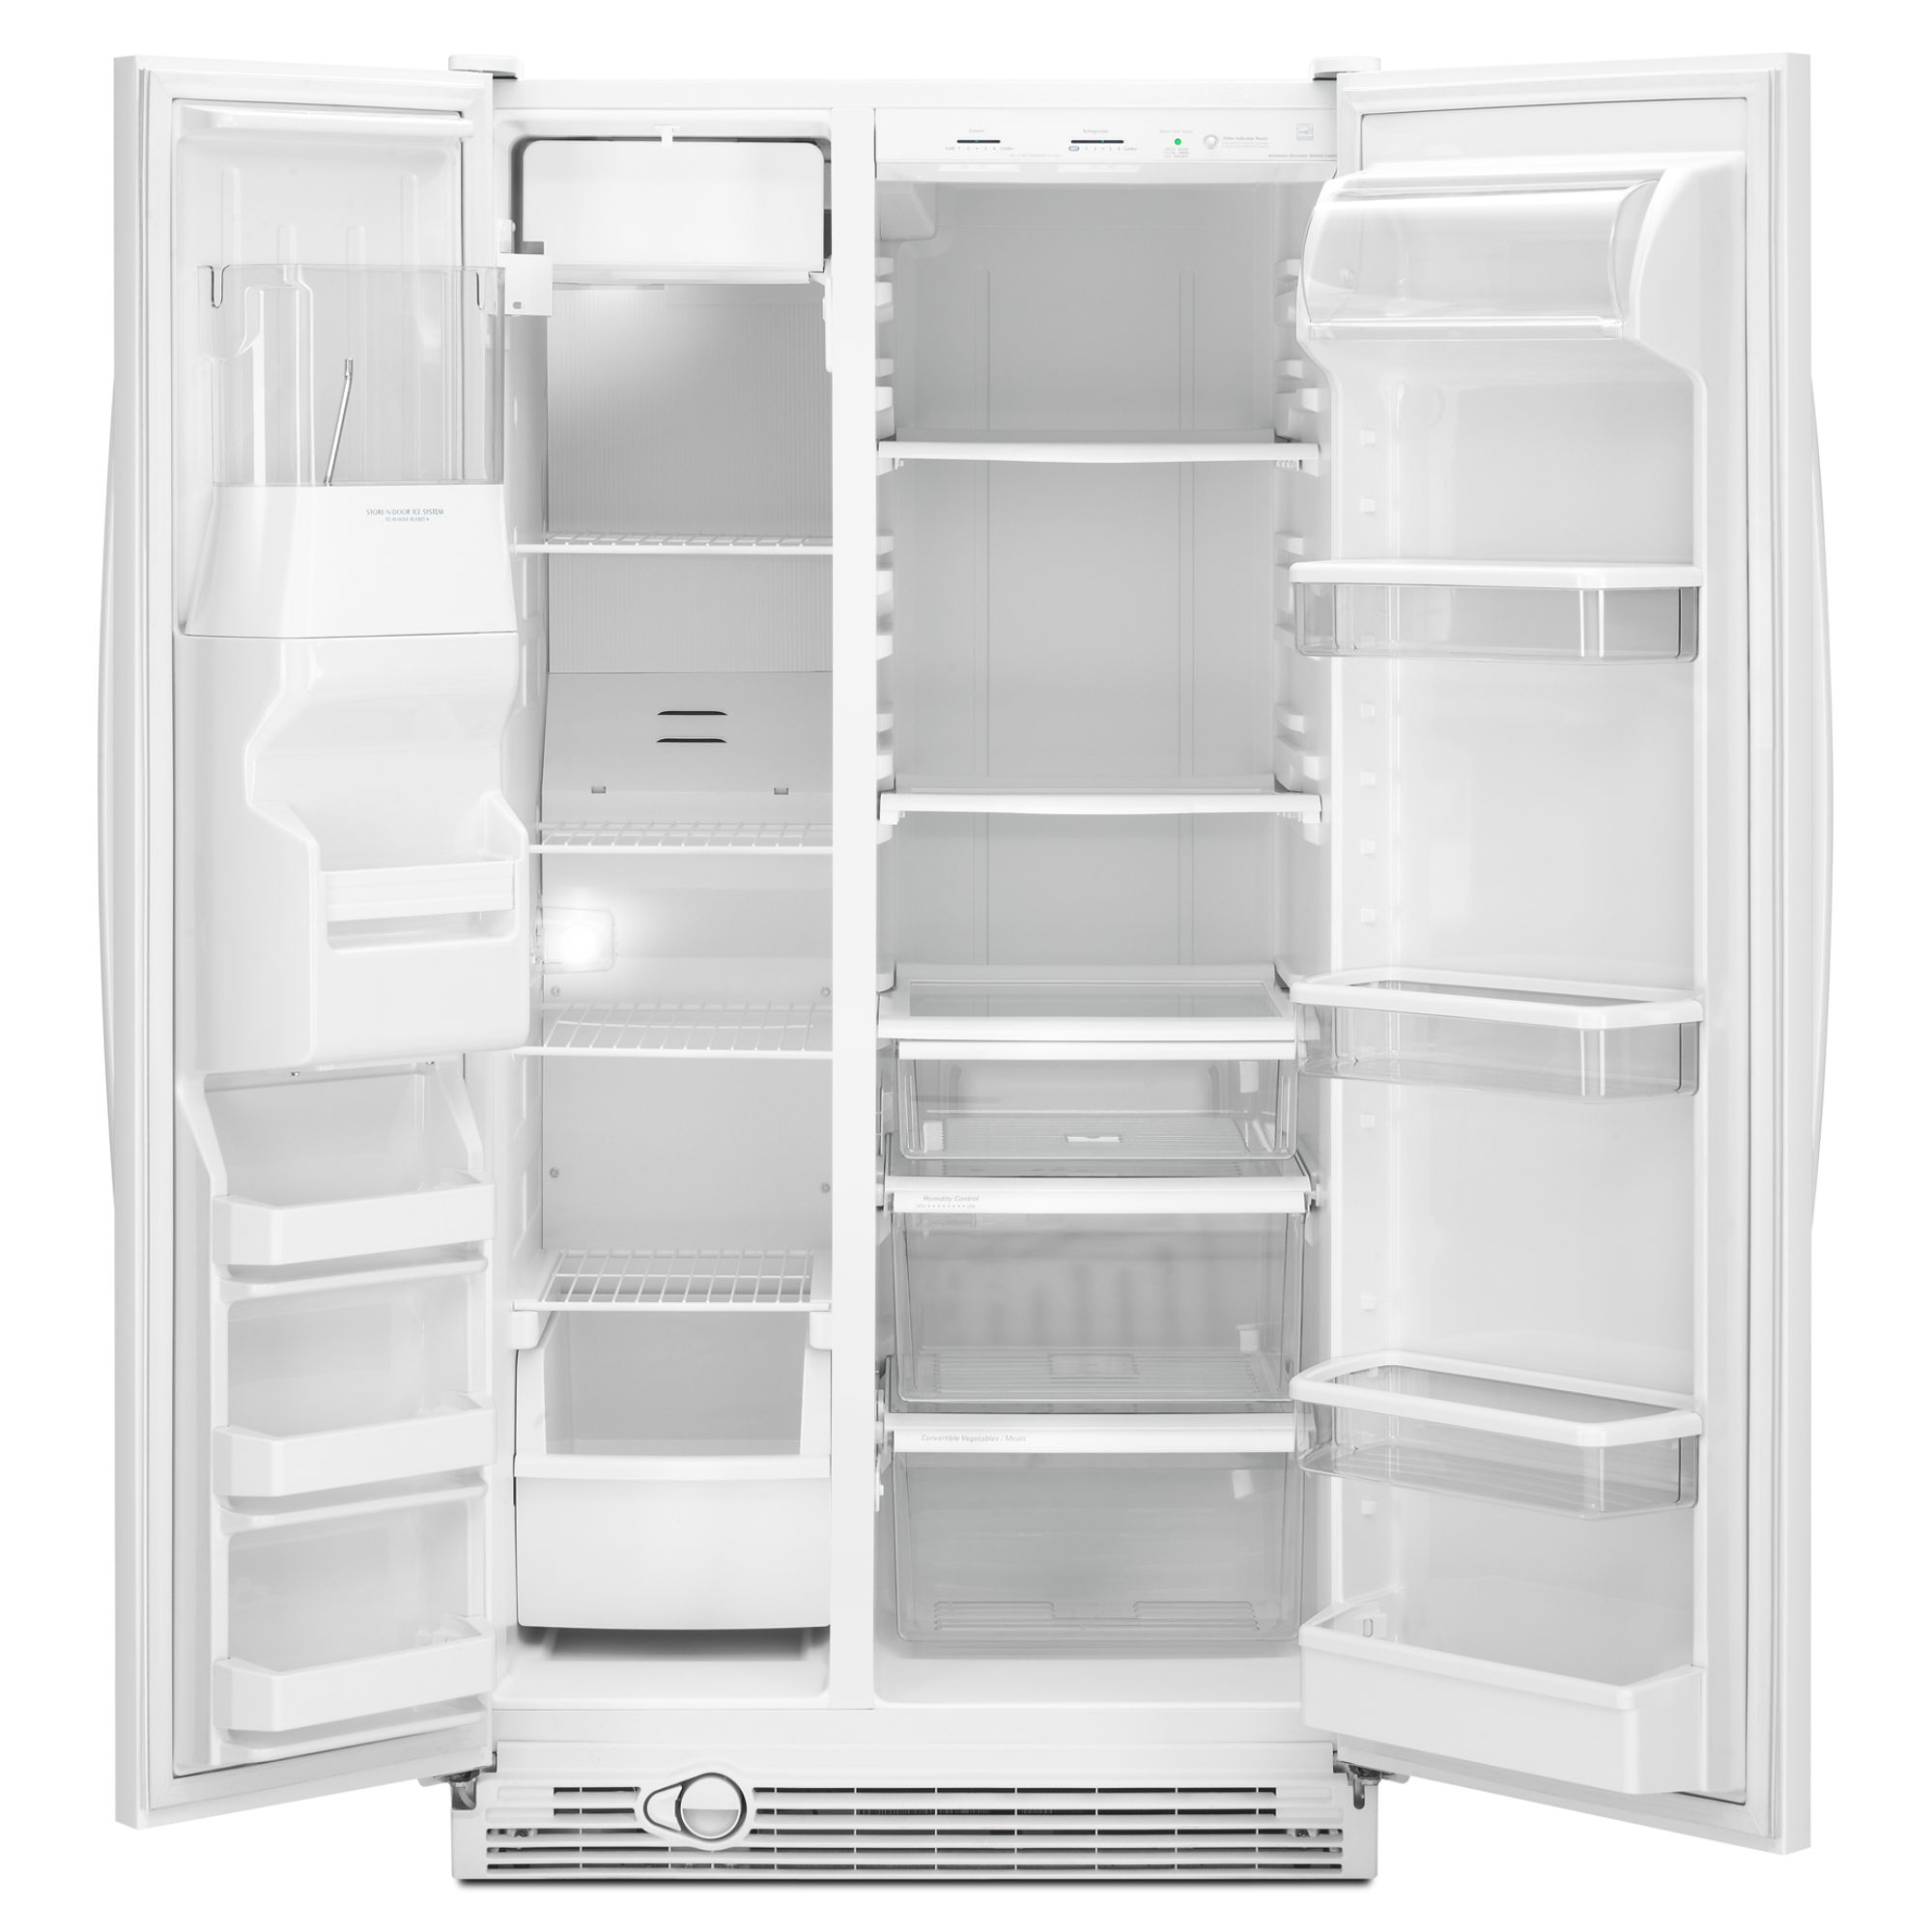 Maytag 21.8 cu. ft. Side-by-Side Refrigerator